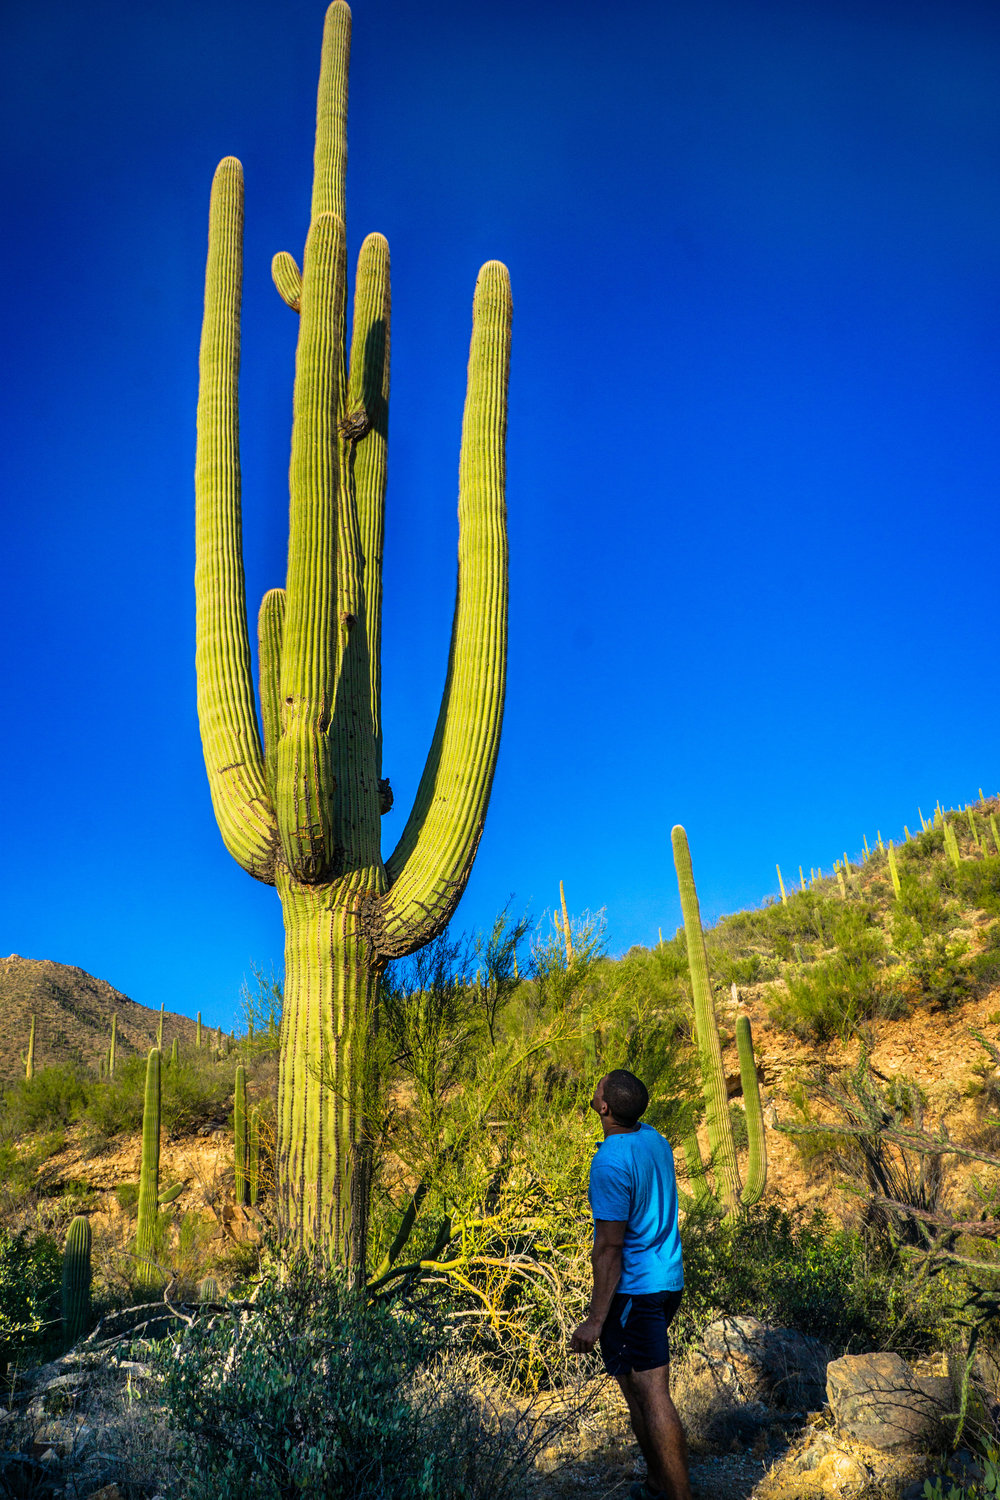 vickygood_photography_nature_saguaro-park8.jpg